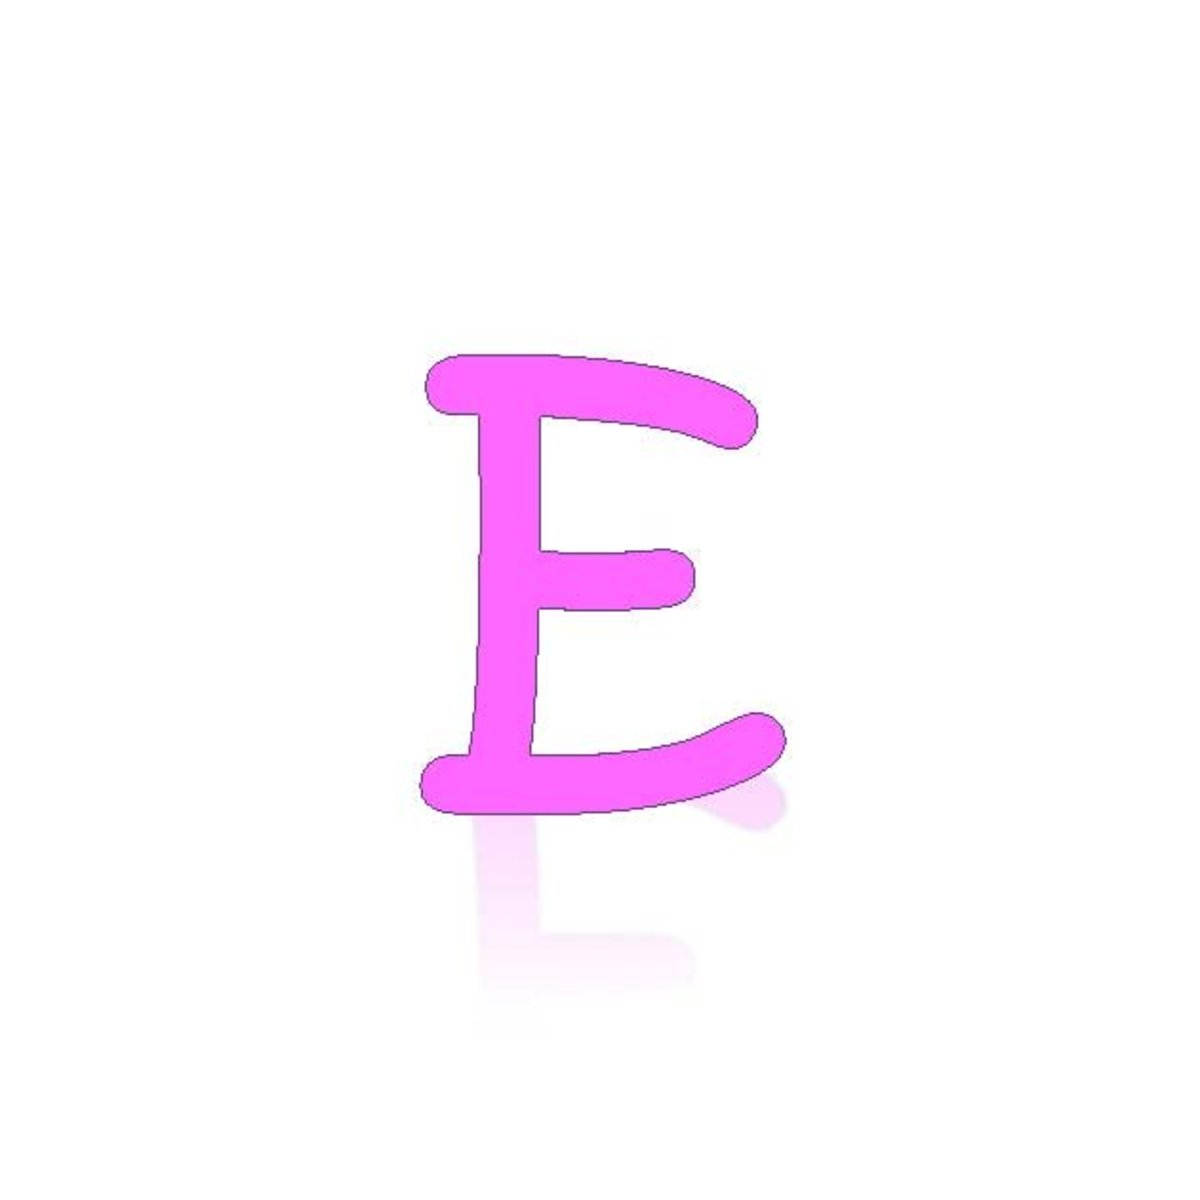 Acrostic Name Poems for Girls Names Starting with E